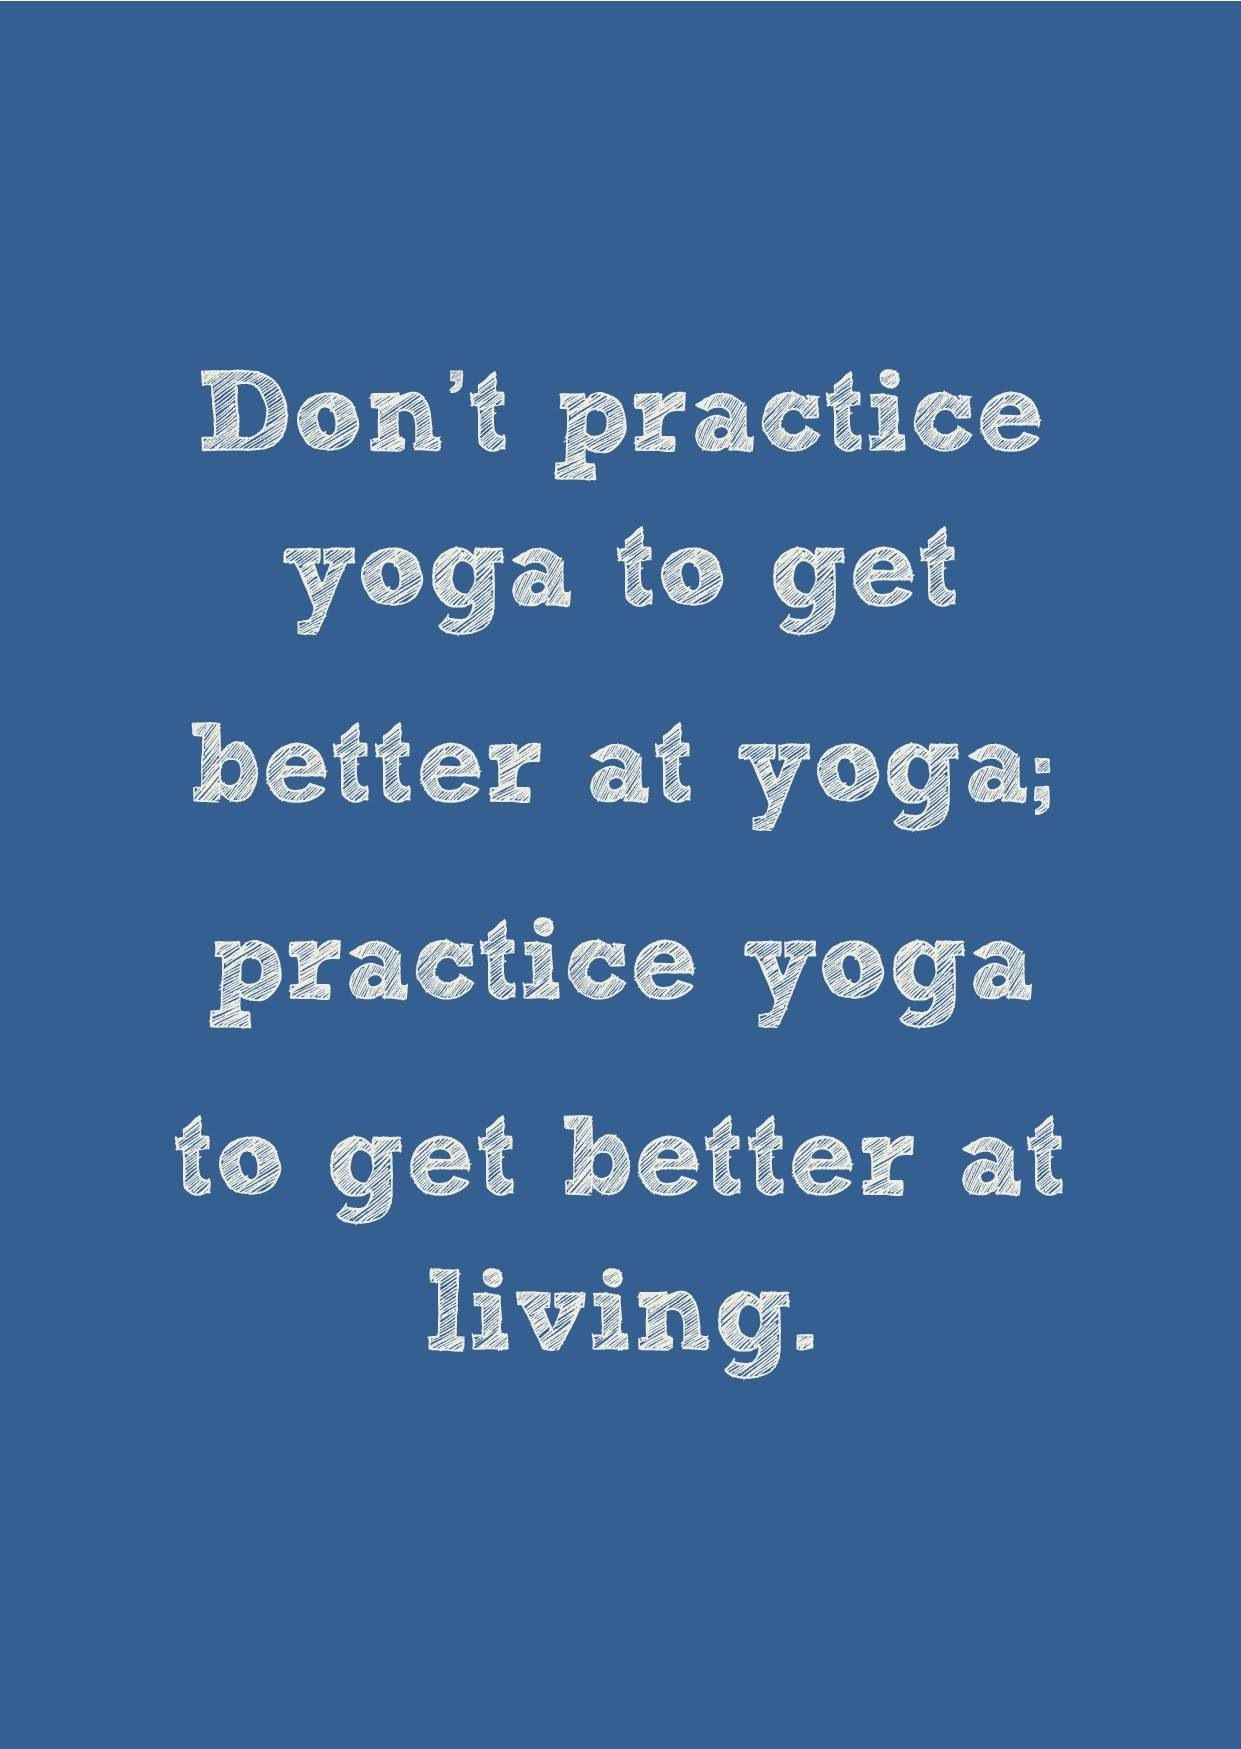 yoga practice quote eight limb life http//eightlimb